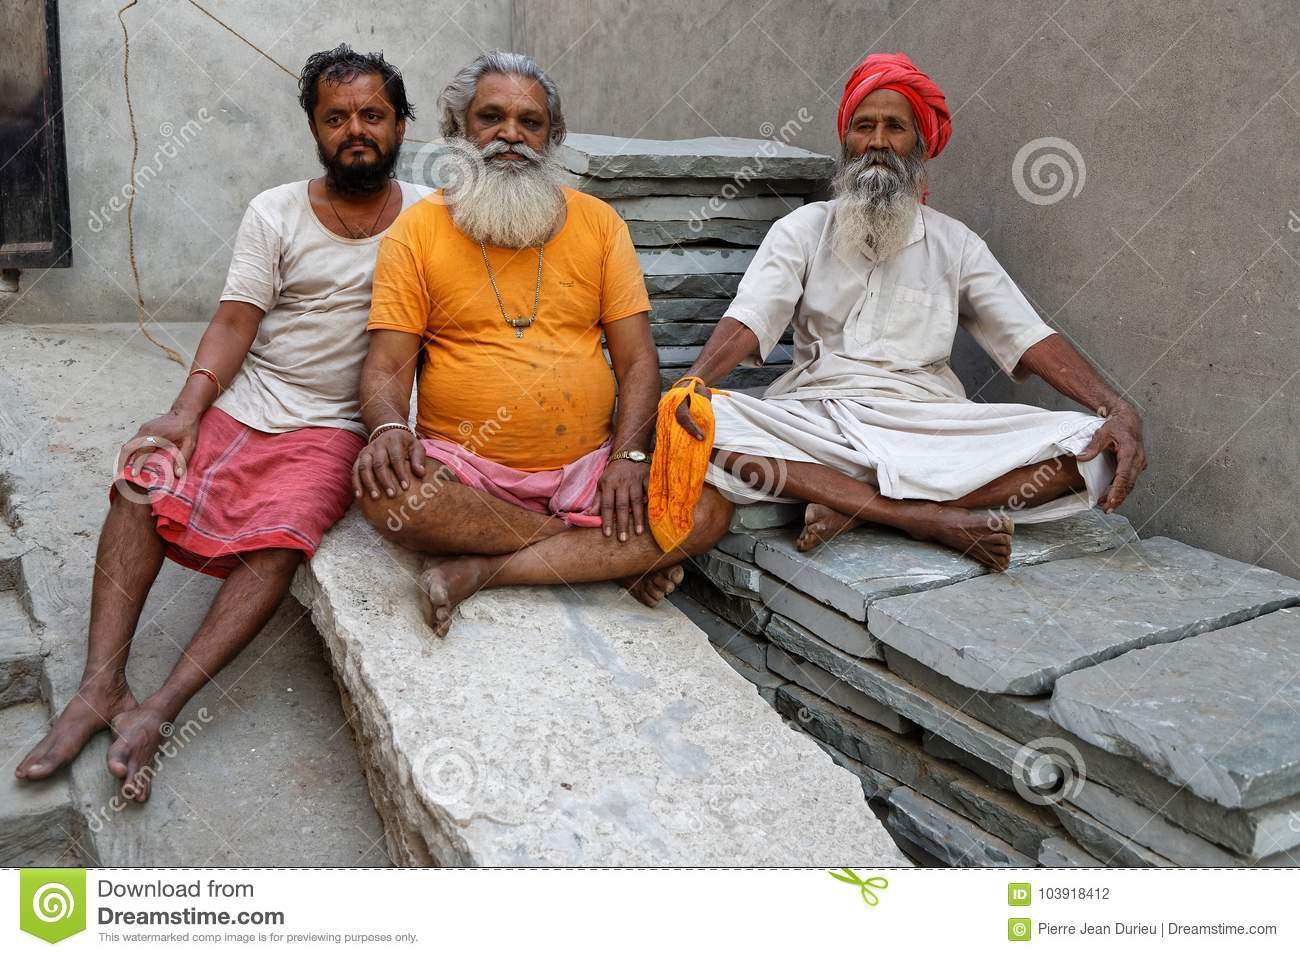 Arresting Sadhus Portrait Photography Religious Photography: Portrait Of Three Sadhus In A Jaipur Ashram Editorial